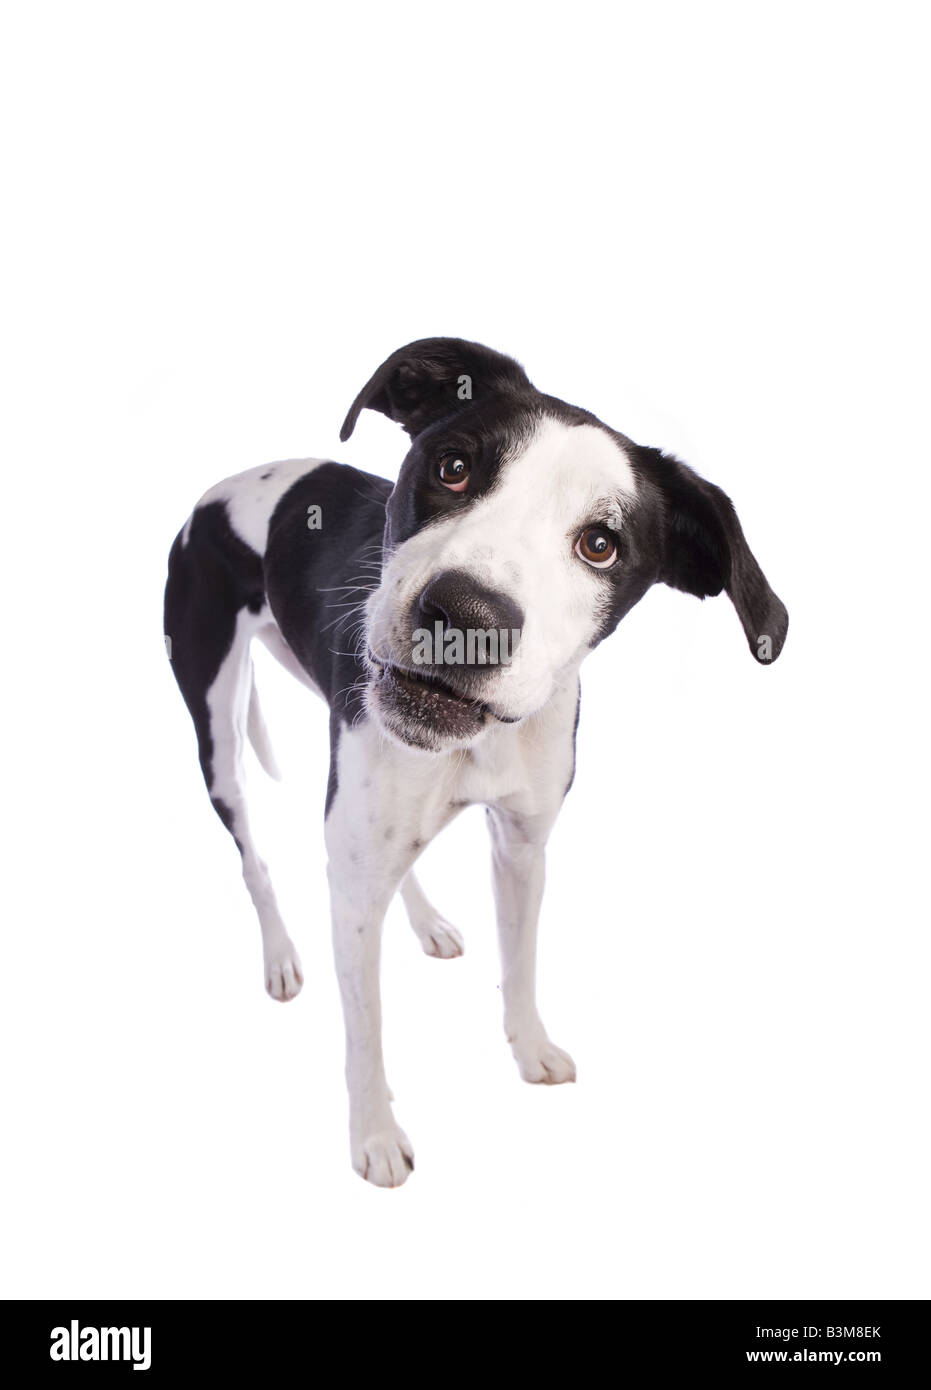 Smiling Black and white Great Dane mix dog isolated on white background - Stock Image